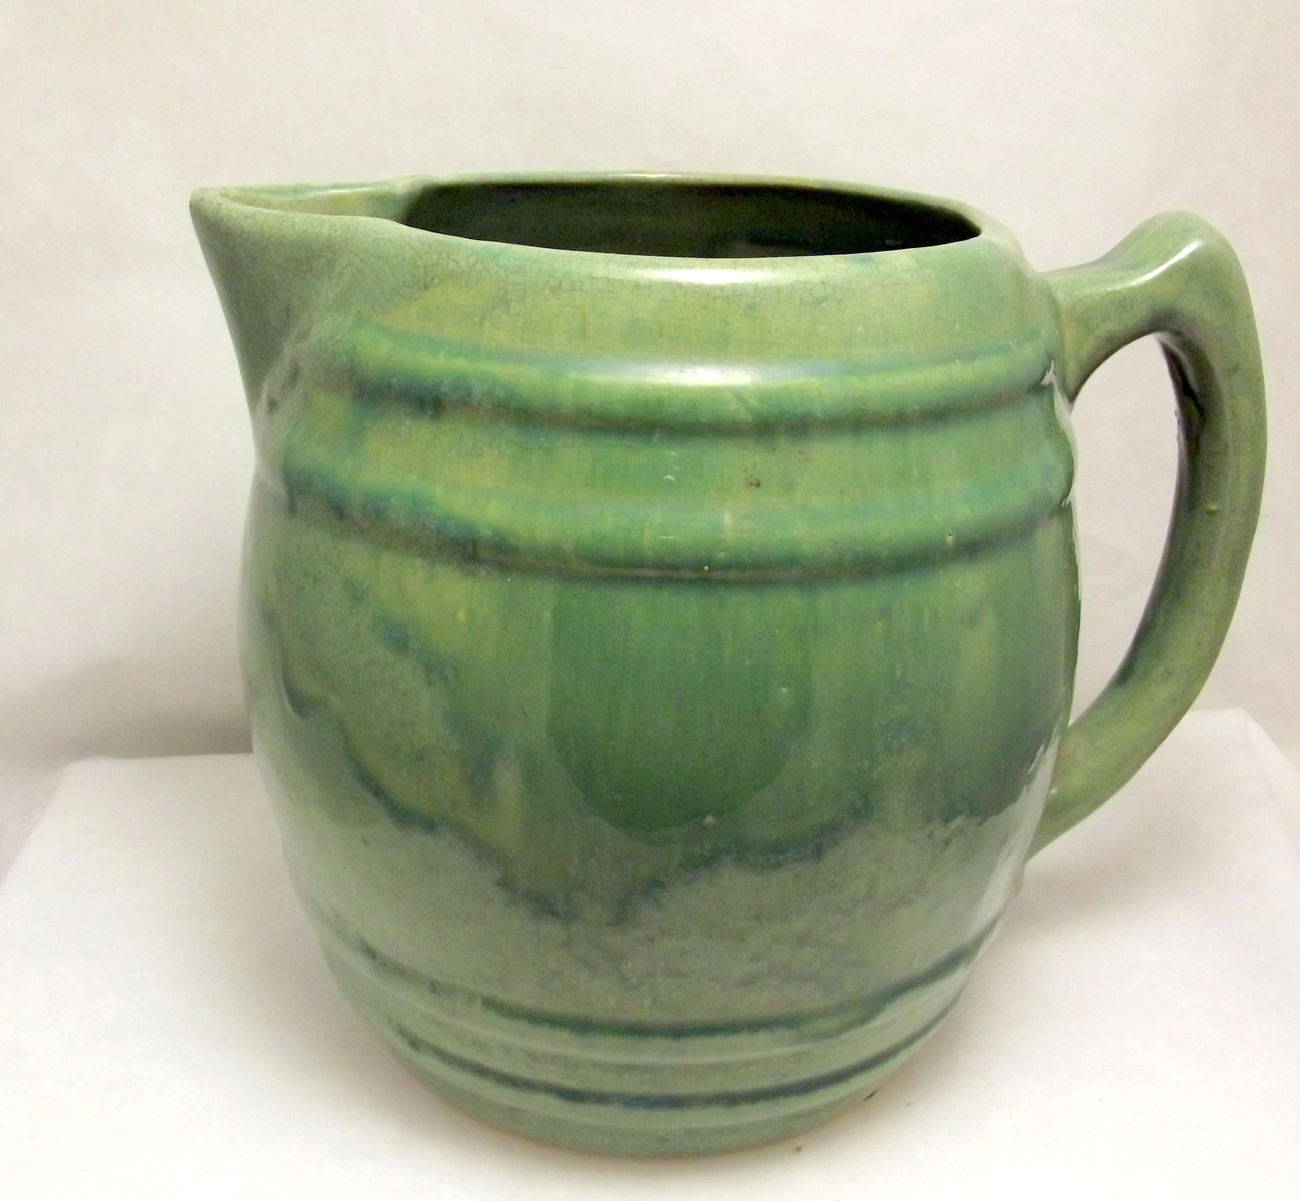 Vintage McCoy Pottery barrel pitcher 1920s green drip glaze USA - McCoy